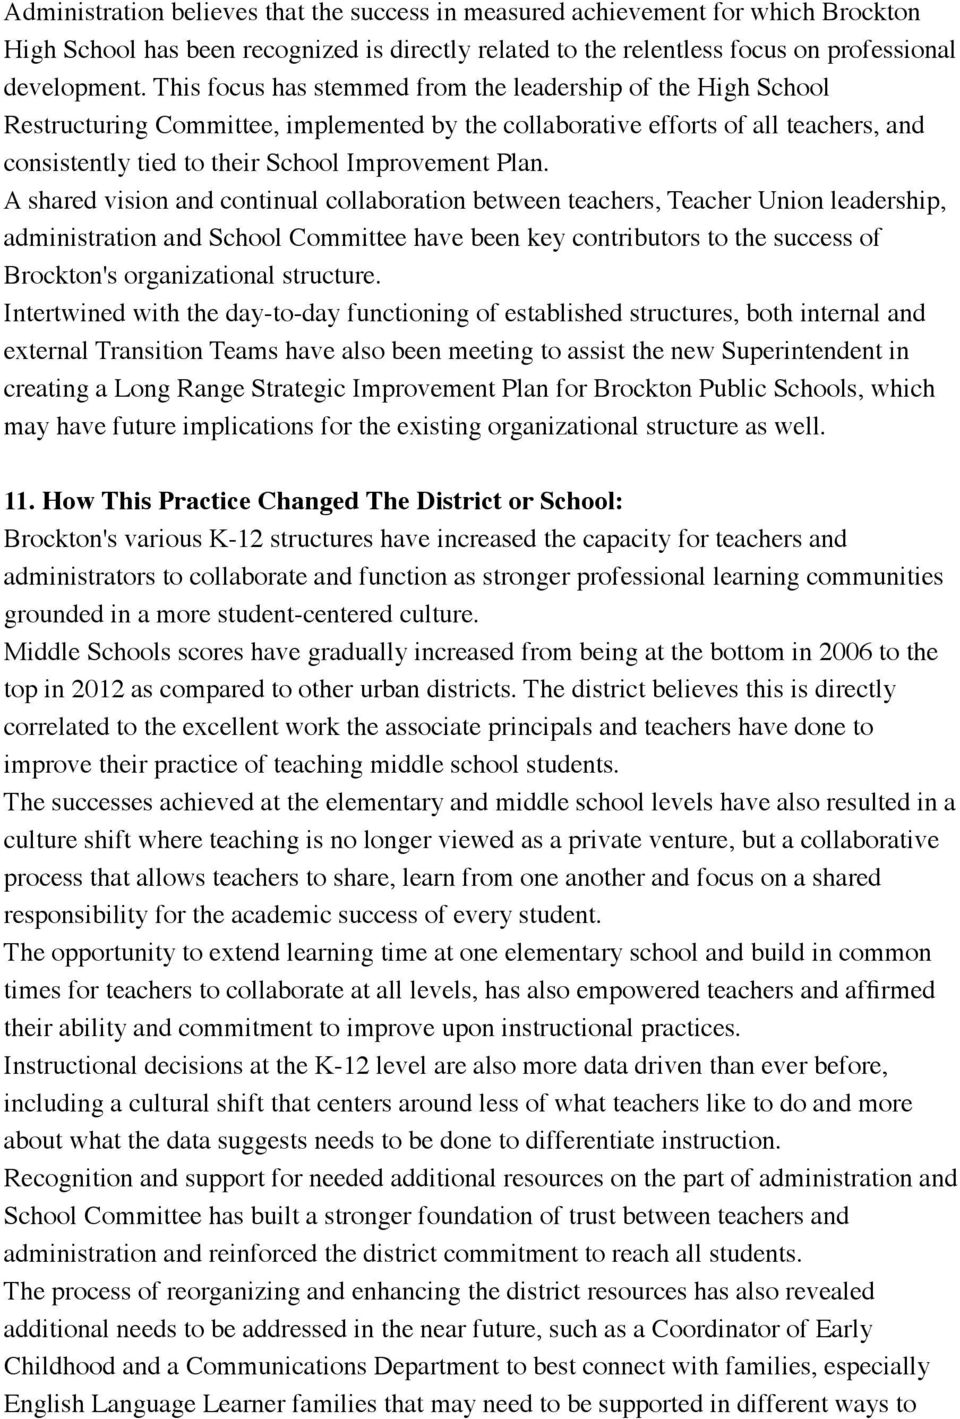 A shared vision and continual collaboration between teachers, Teacher Union leadership, administration and School Committee have been key contributors to the success of Brockton's organizational